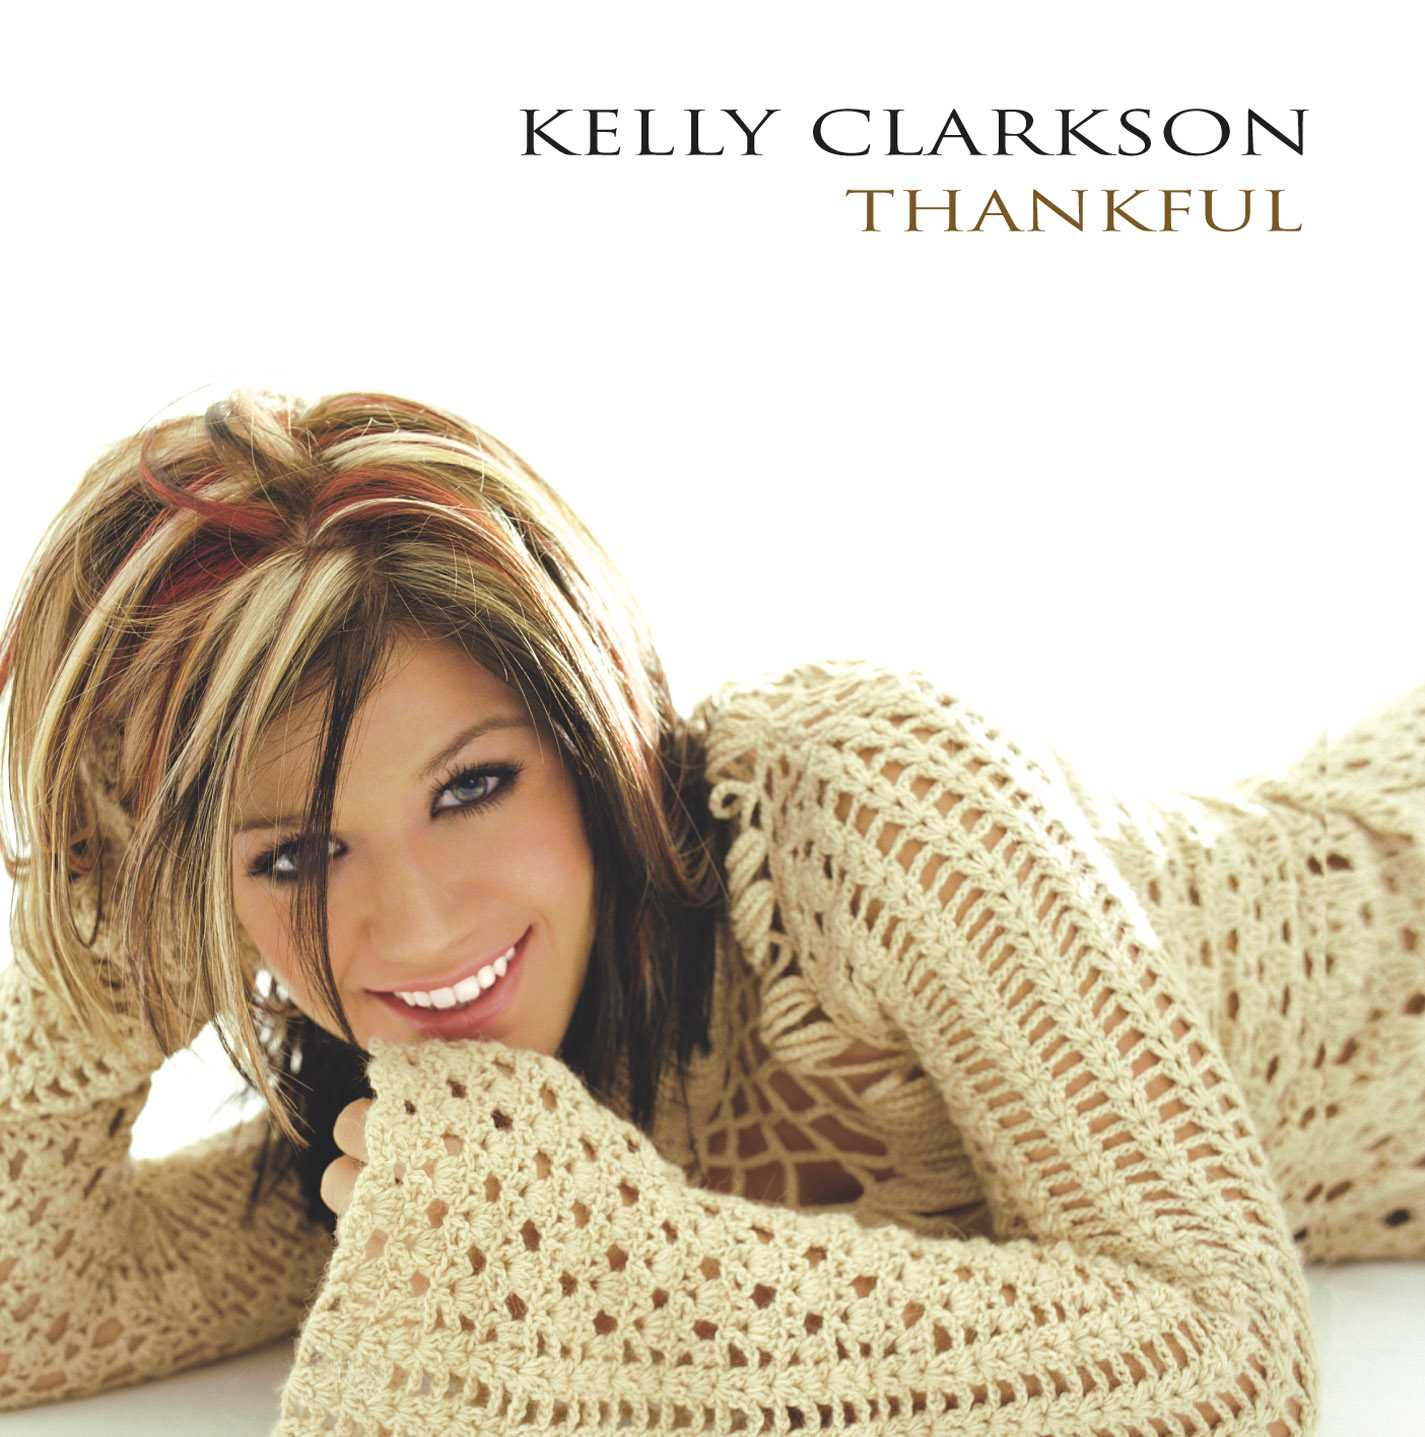 Kelly Clarkson, Thankful